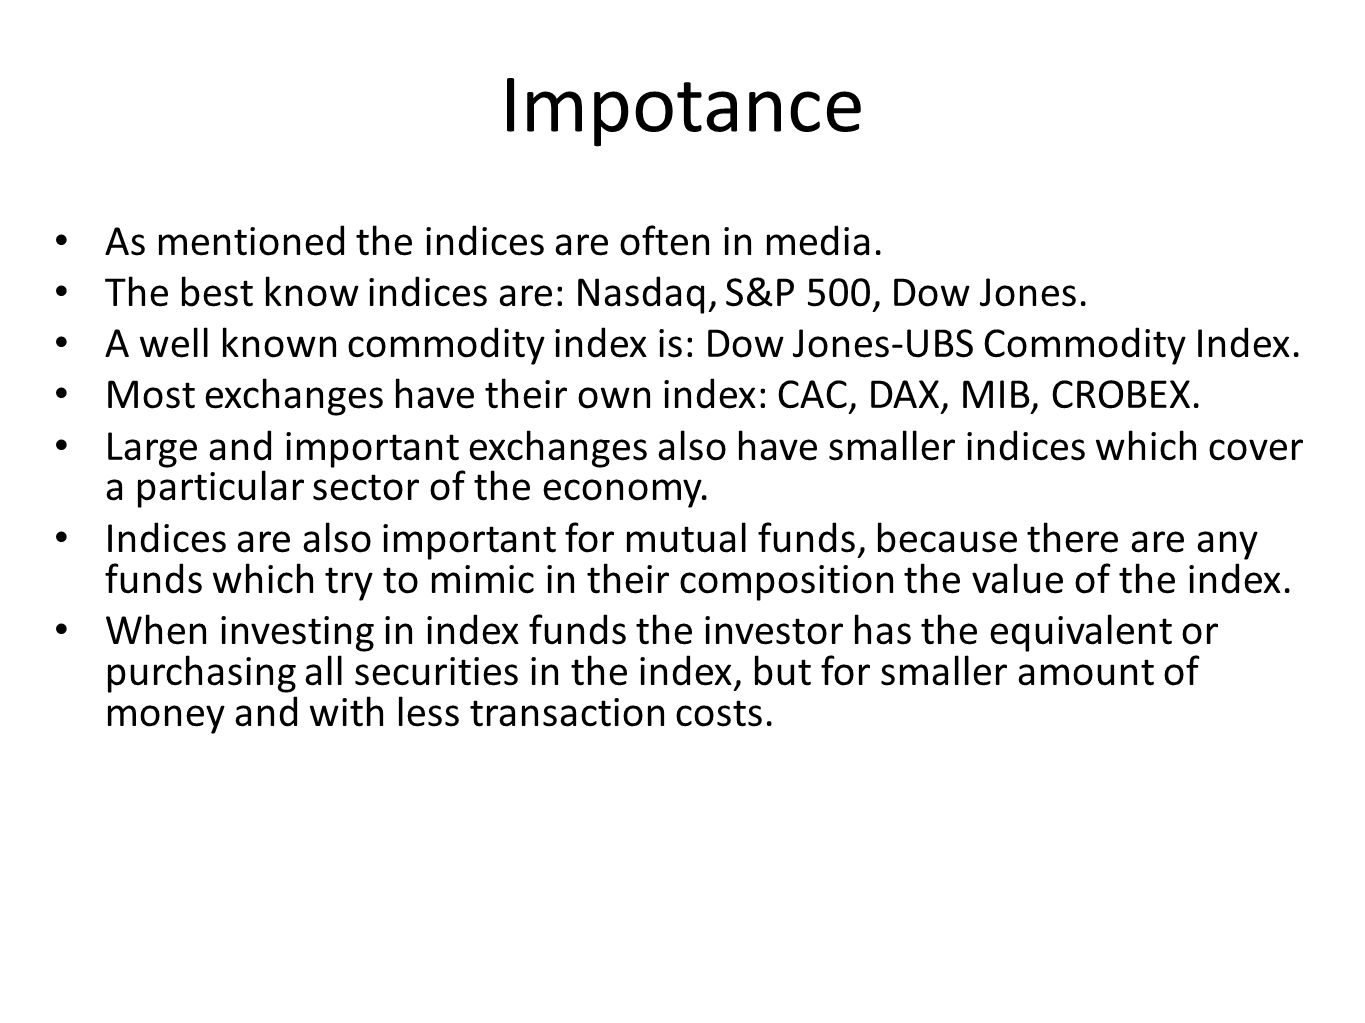 Impotance As mentioned the indices are often in media. The best know indices are: Nasdaq, S&P 500, Dow Jones. A well known commodity index is: Dow Jon